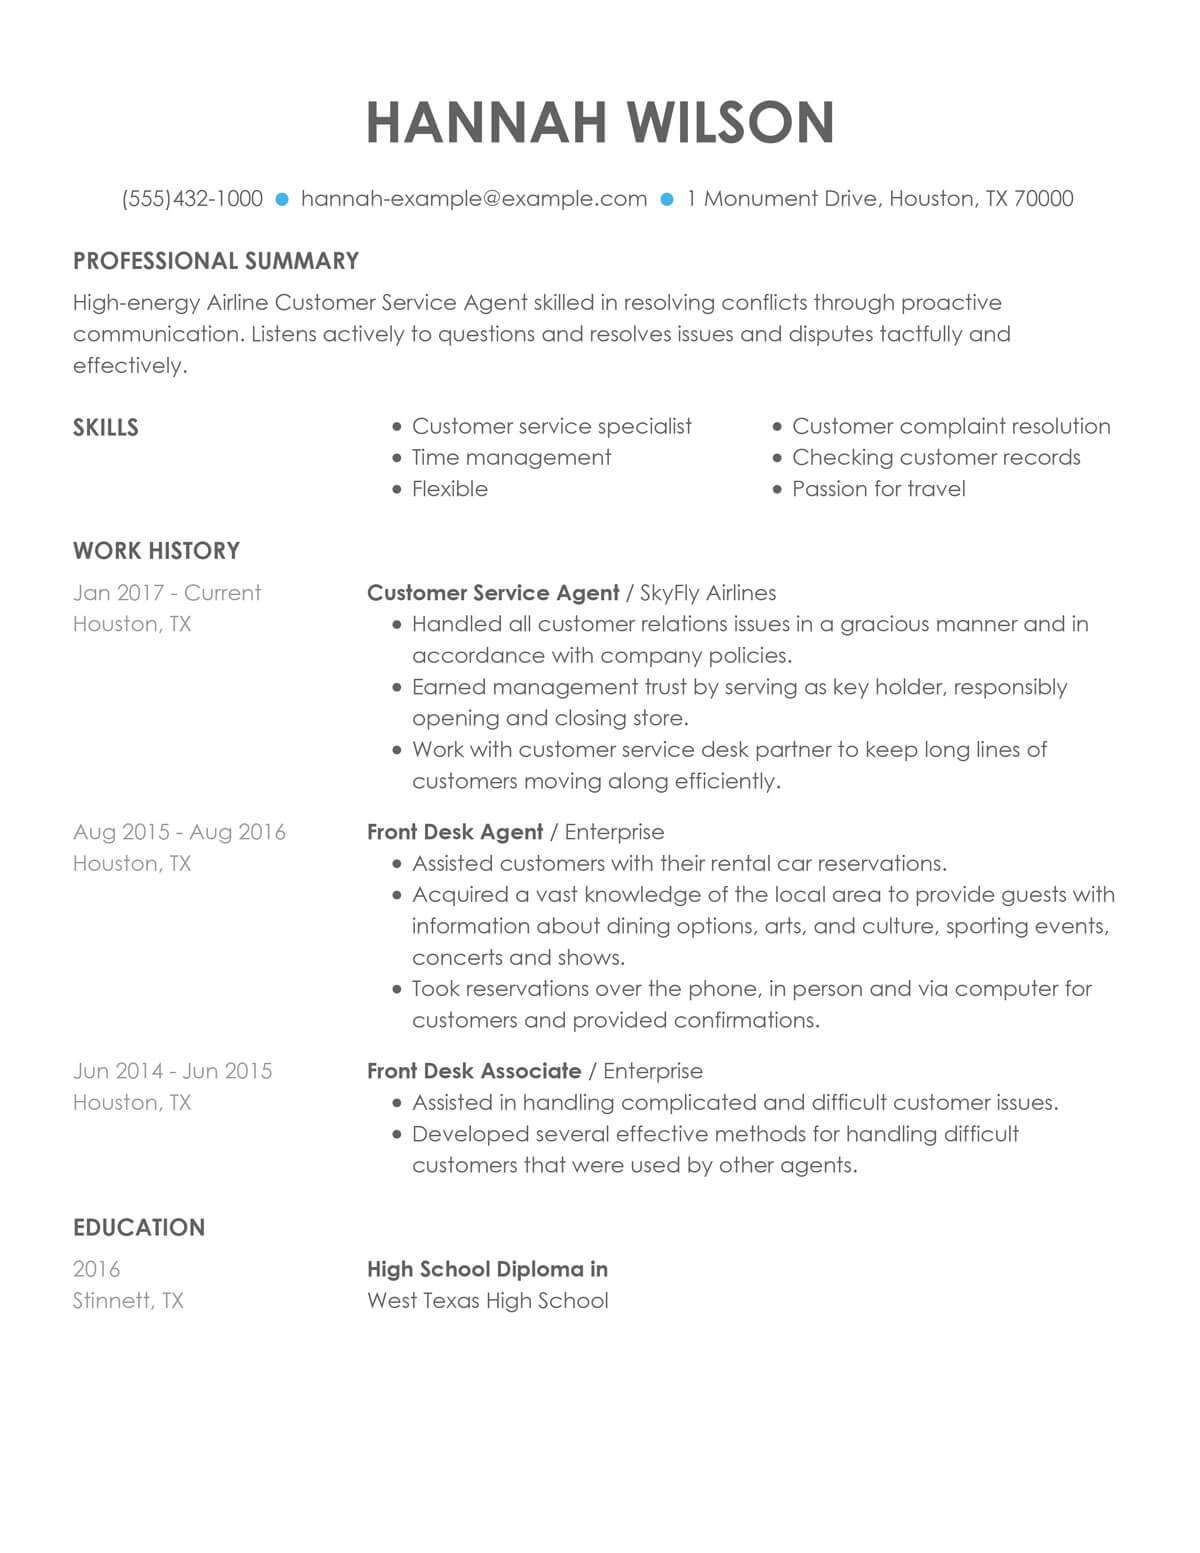 customize our customer representative resume example build service number airline agent Resume Build A Resume Customer Service Number